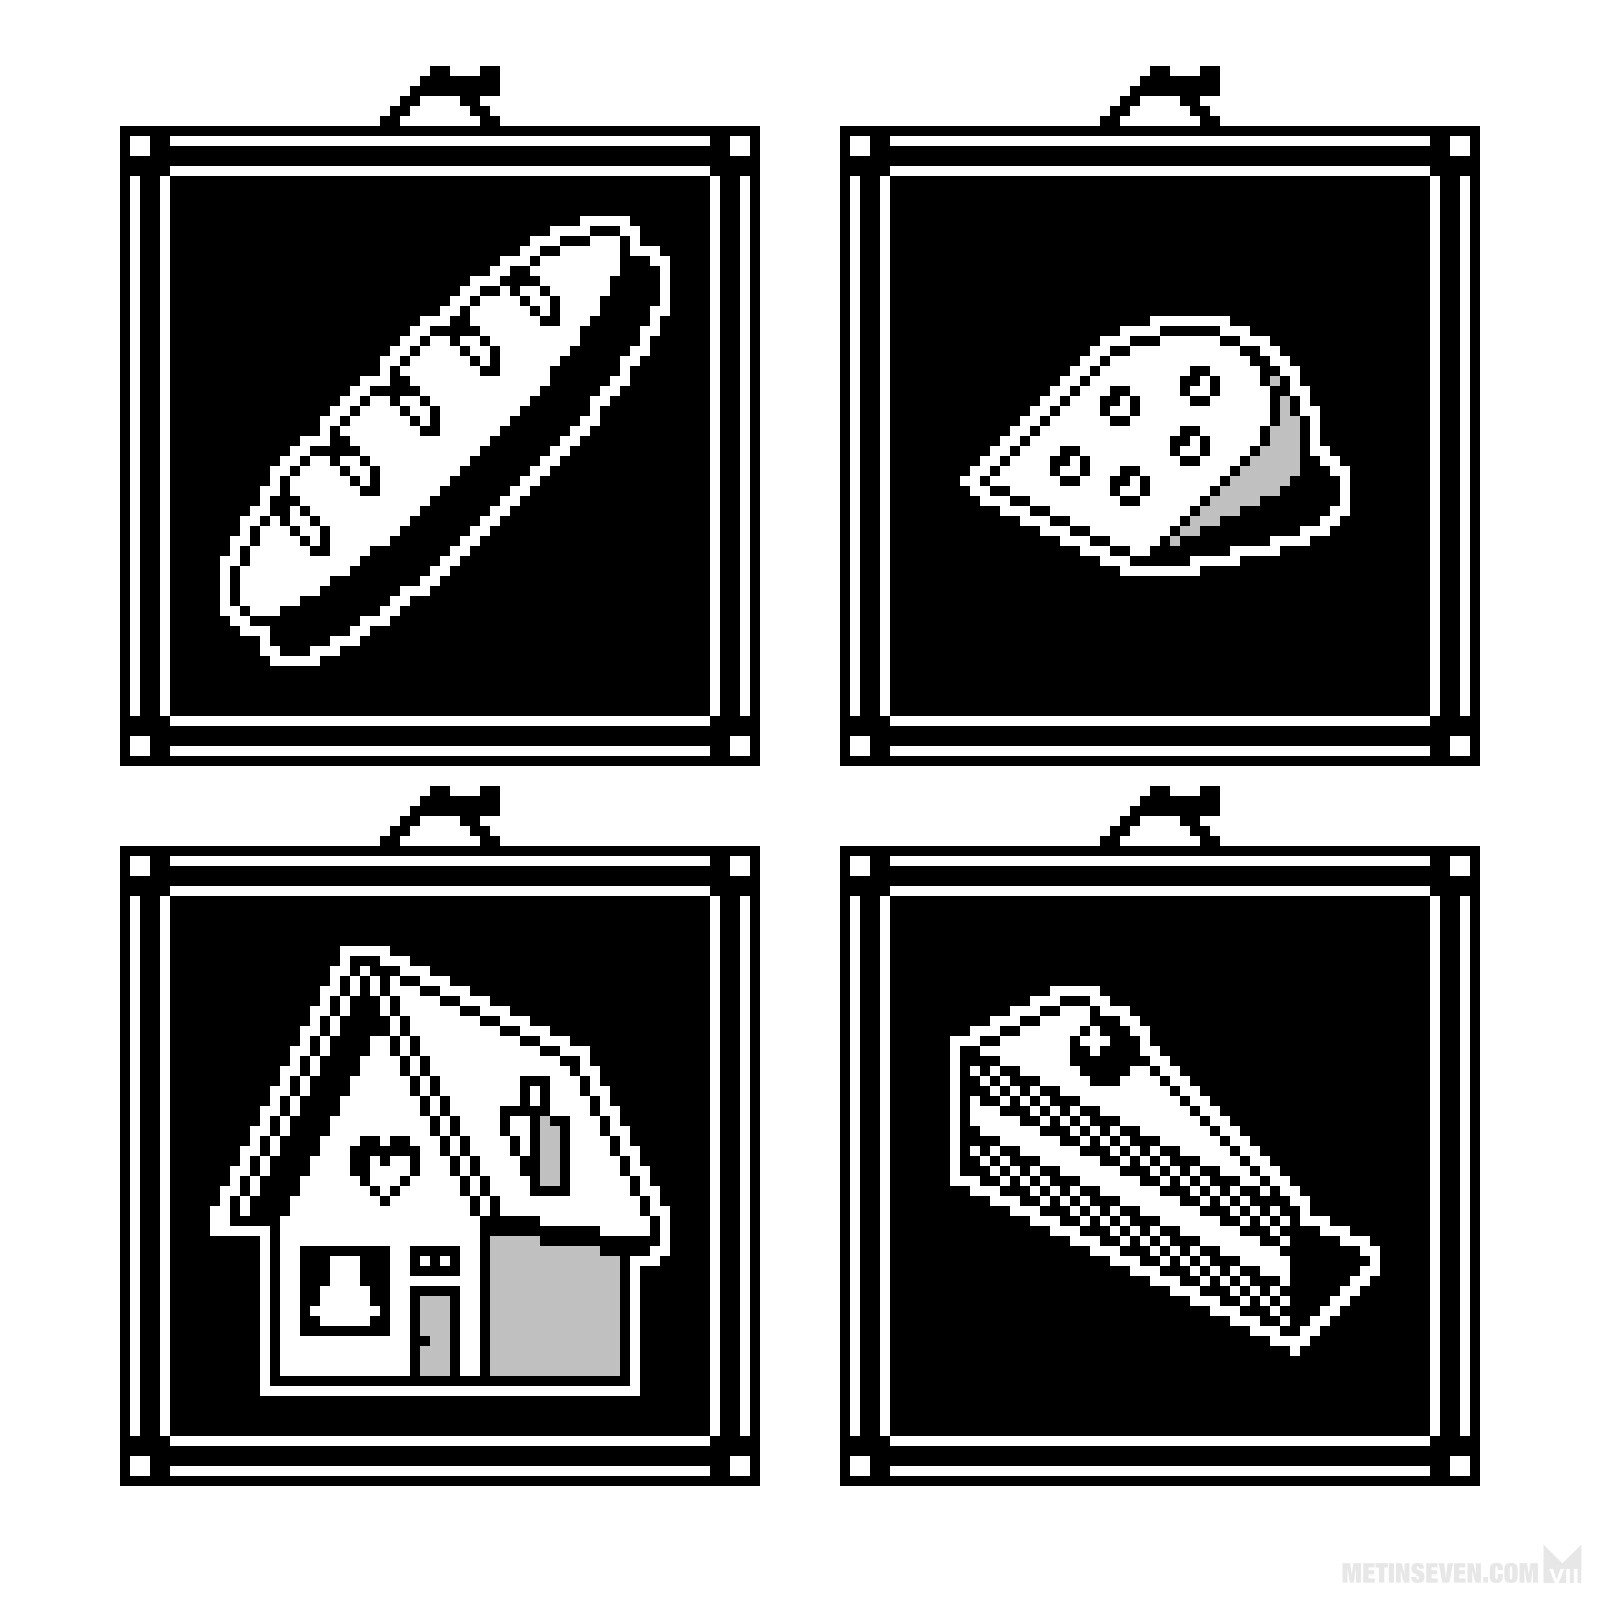 Black and white pixel art icons